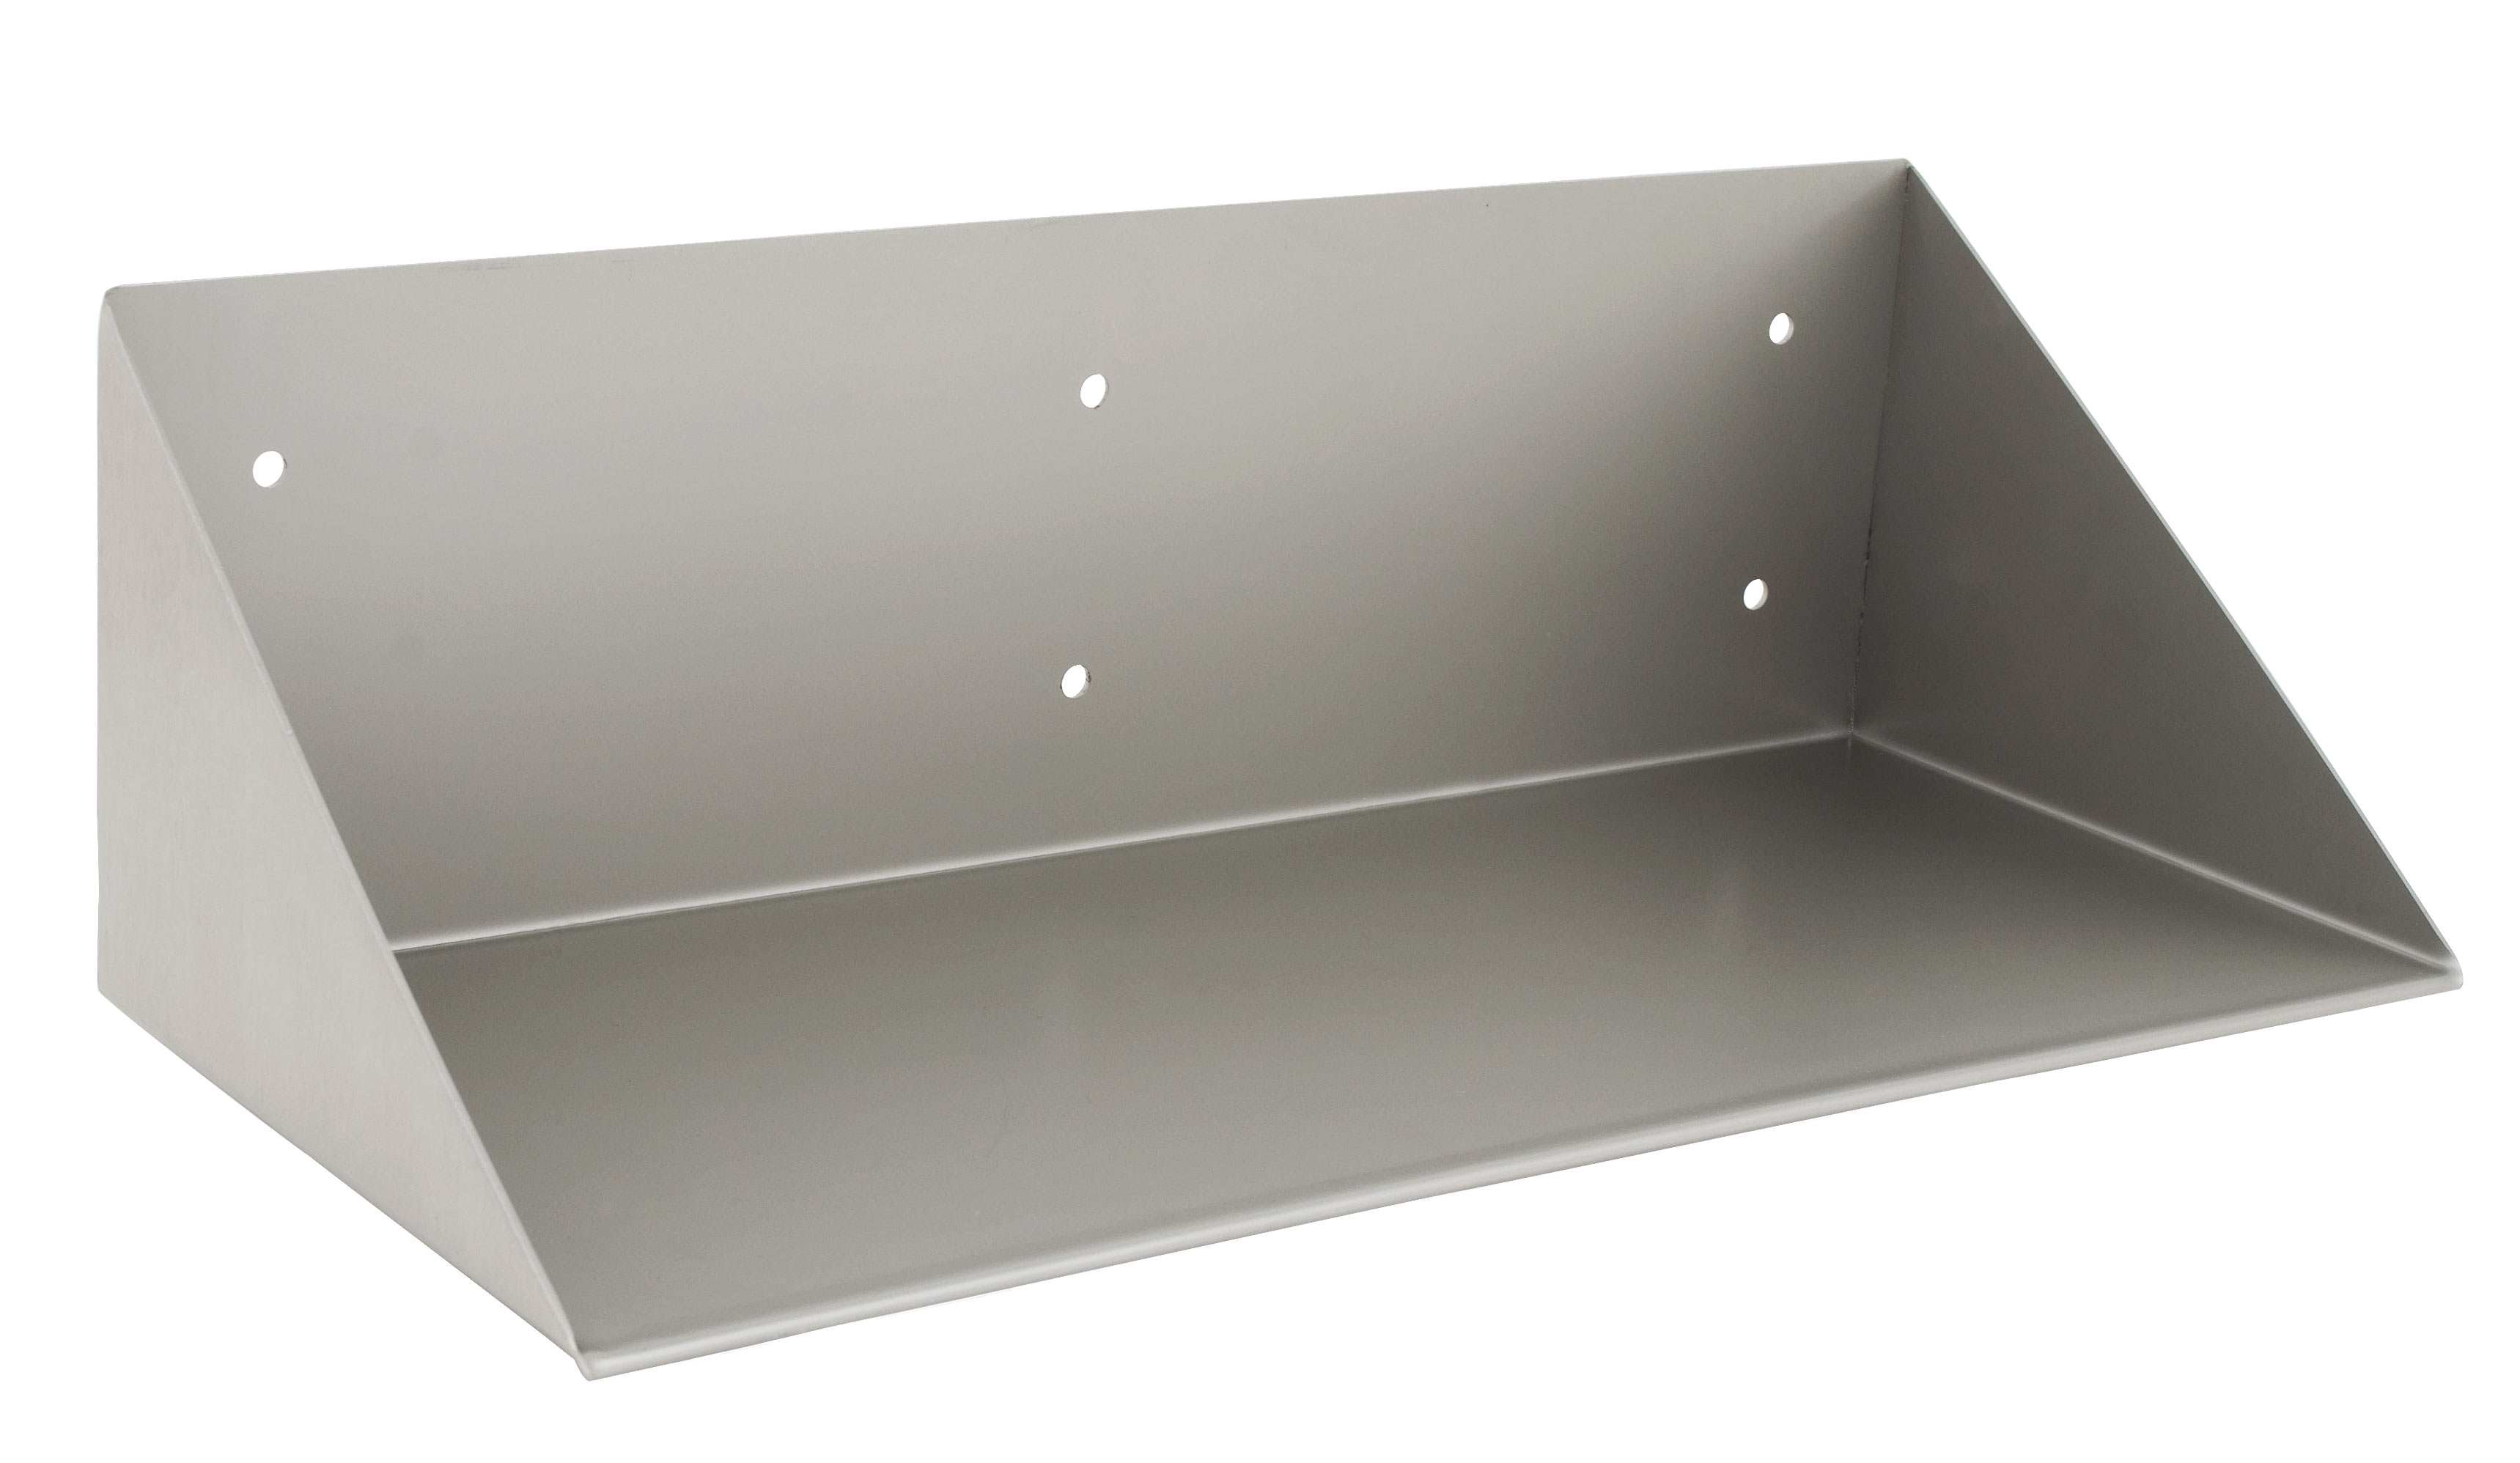 jj of sanitaryware lazzaro shelf product steel wall number buy shelves stainless